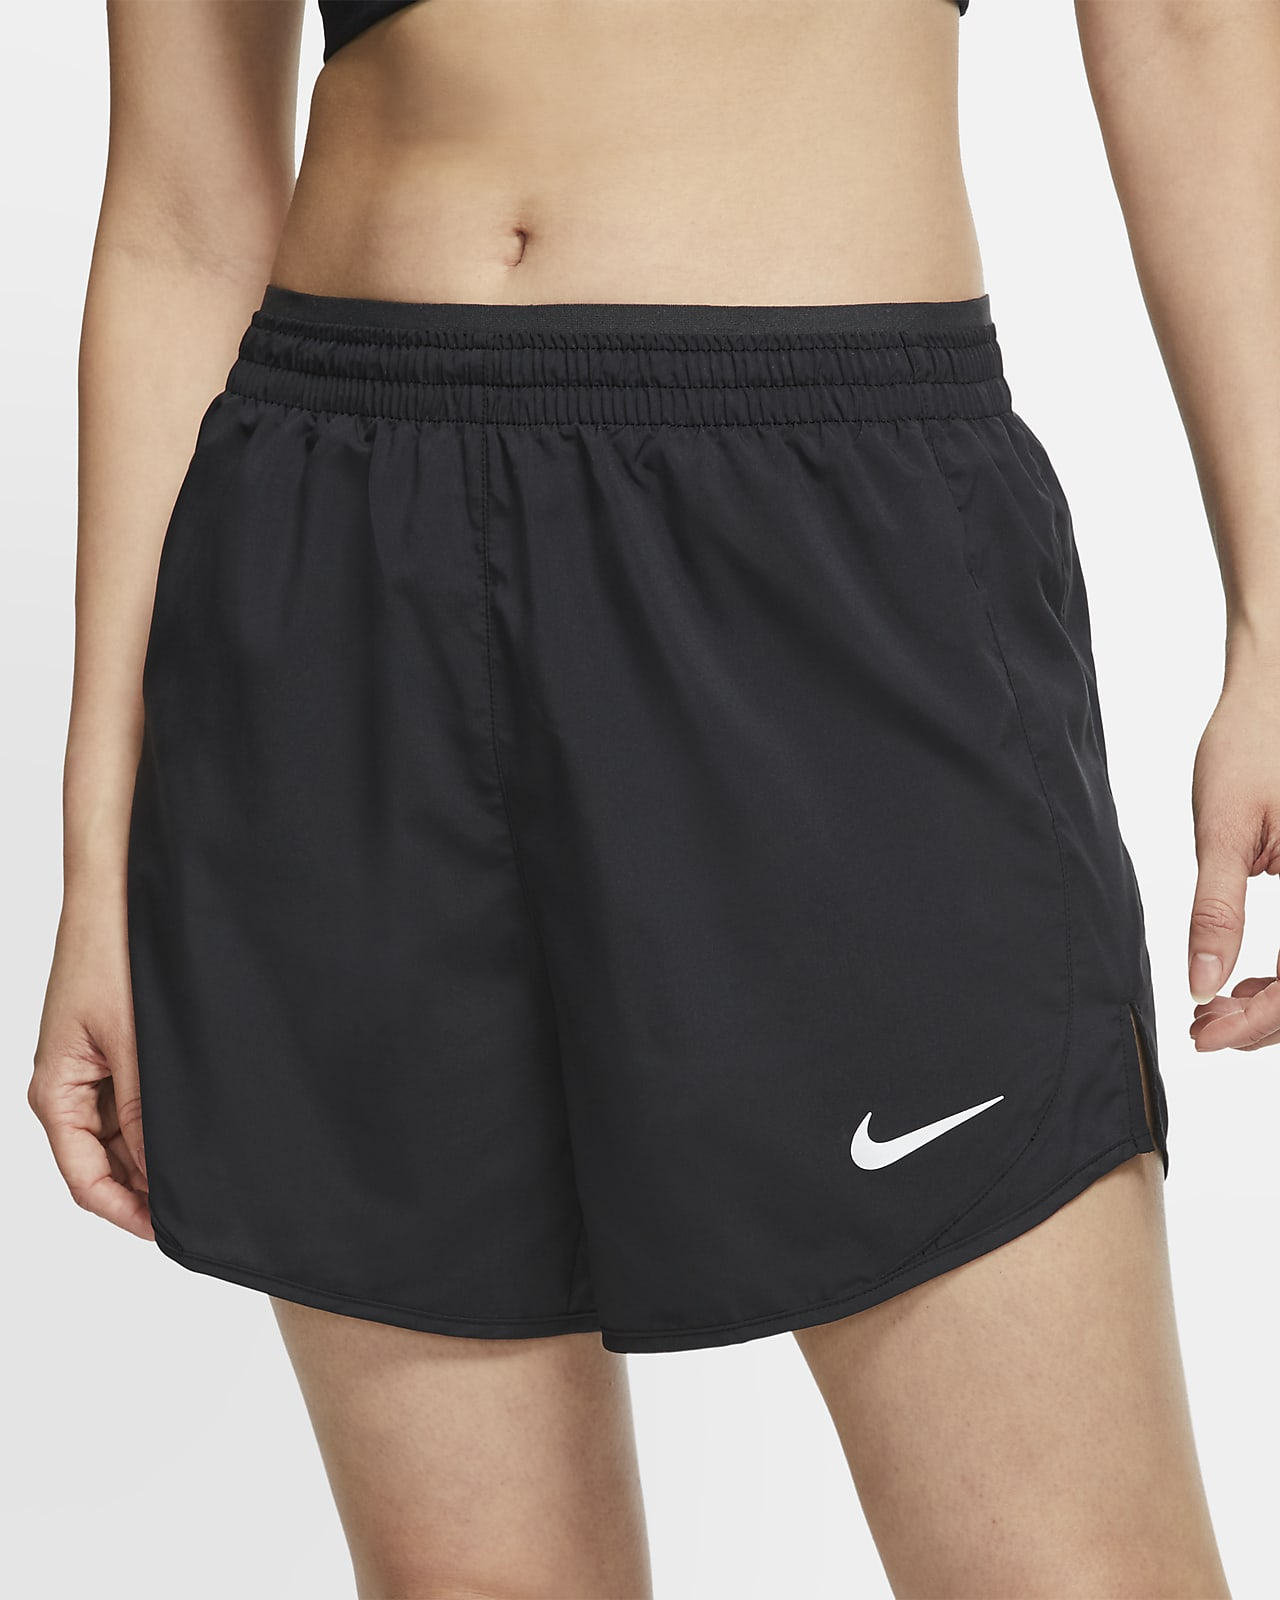 Nike Tempo Luxe Hardloopshorts voor dames